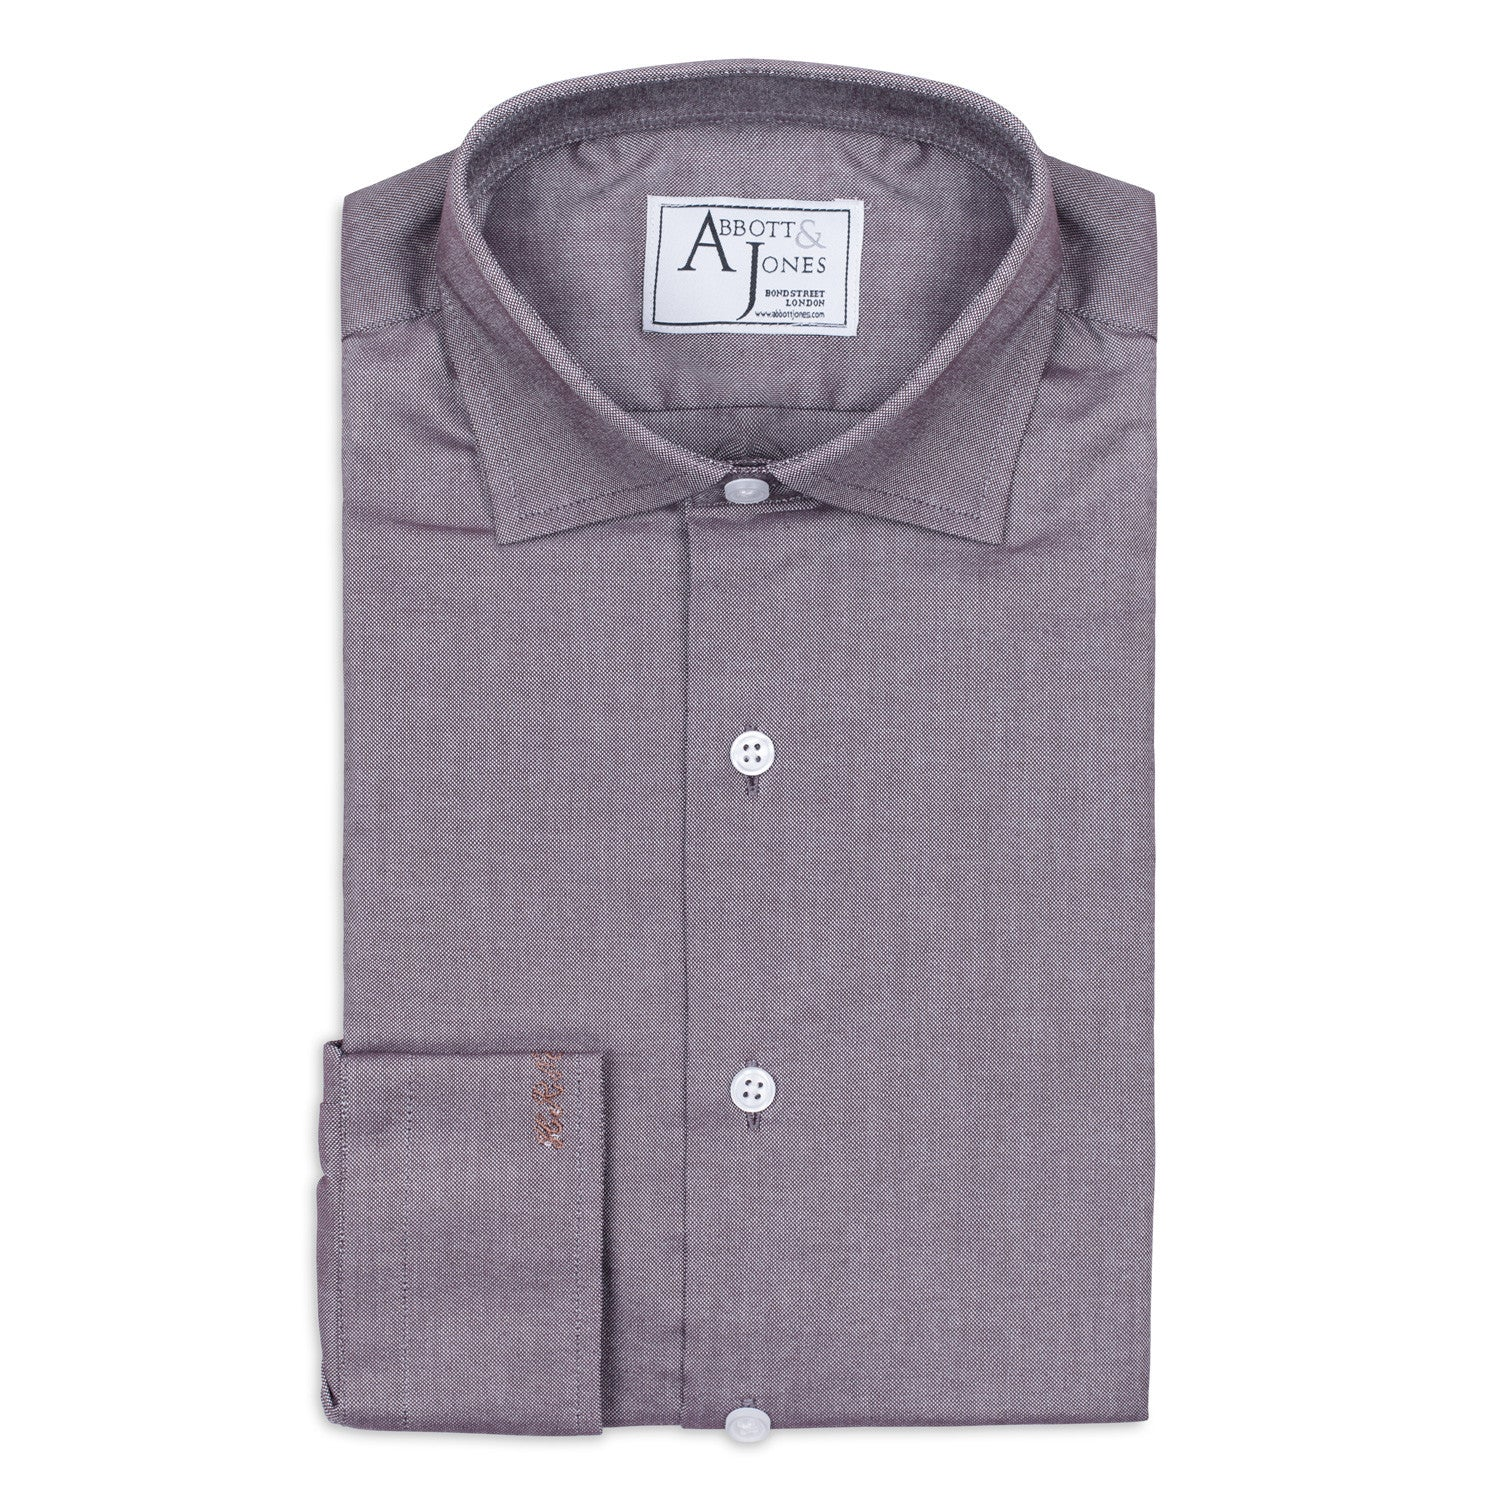 Brown Bespoke Shirt